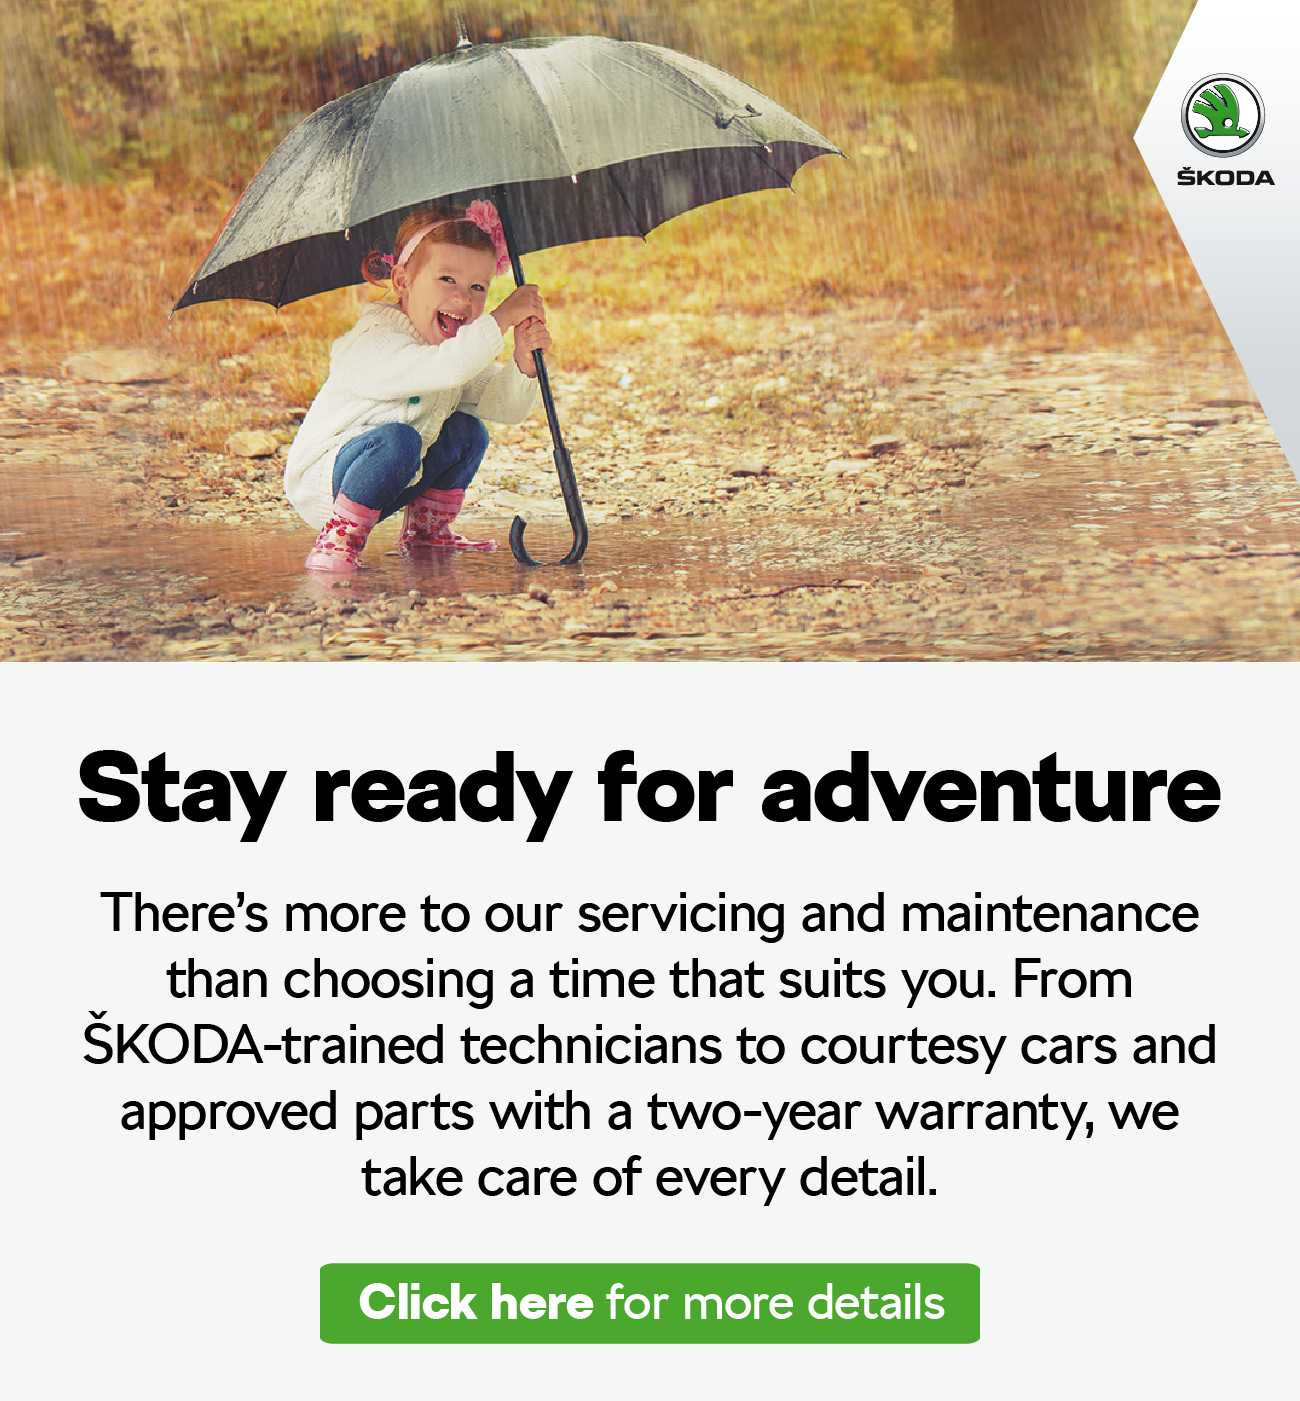 SKODA Aftersales Services